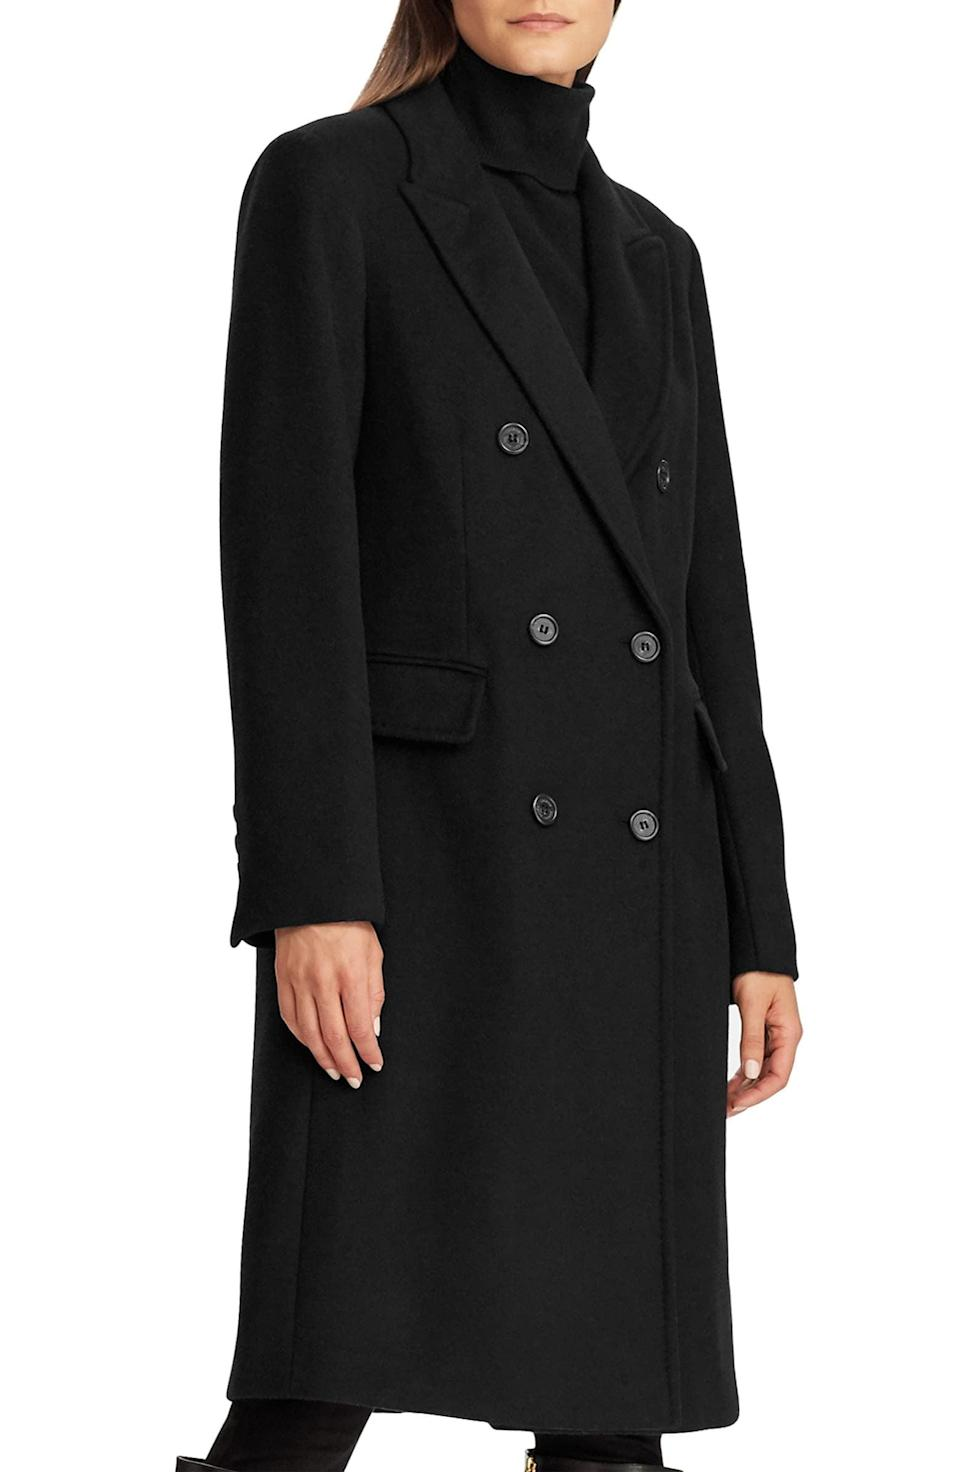 <p>Bring the drama, but still keep their look classic in this <span>Lauren Ralph Lauren Double Breasted Wool Blend Coat</span> ($200, originally $340).</p>